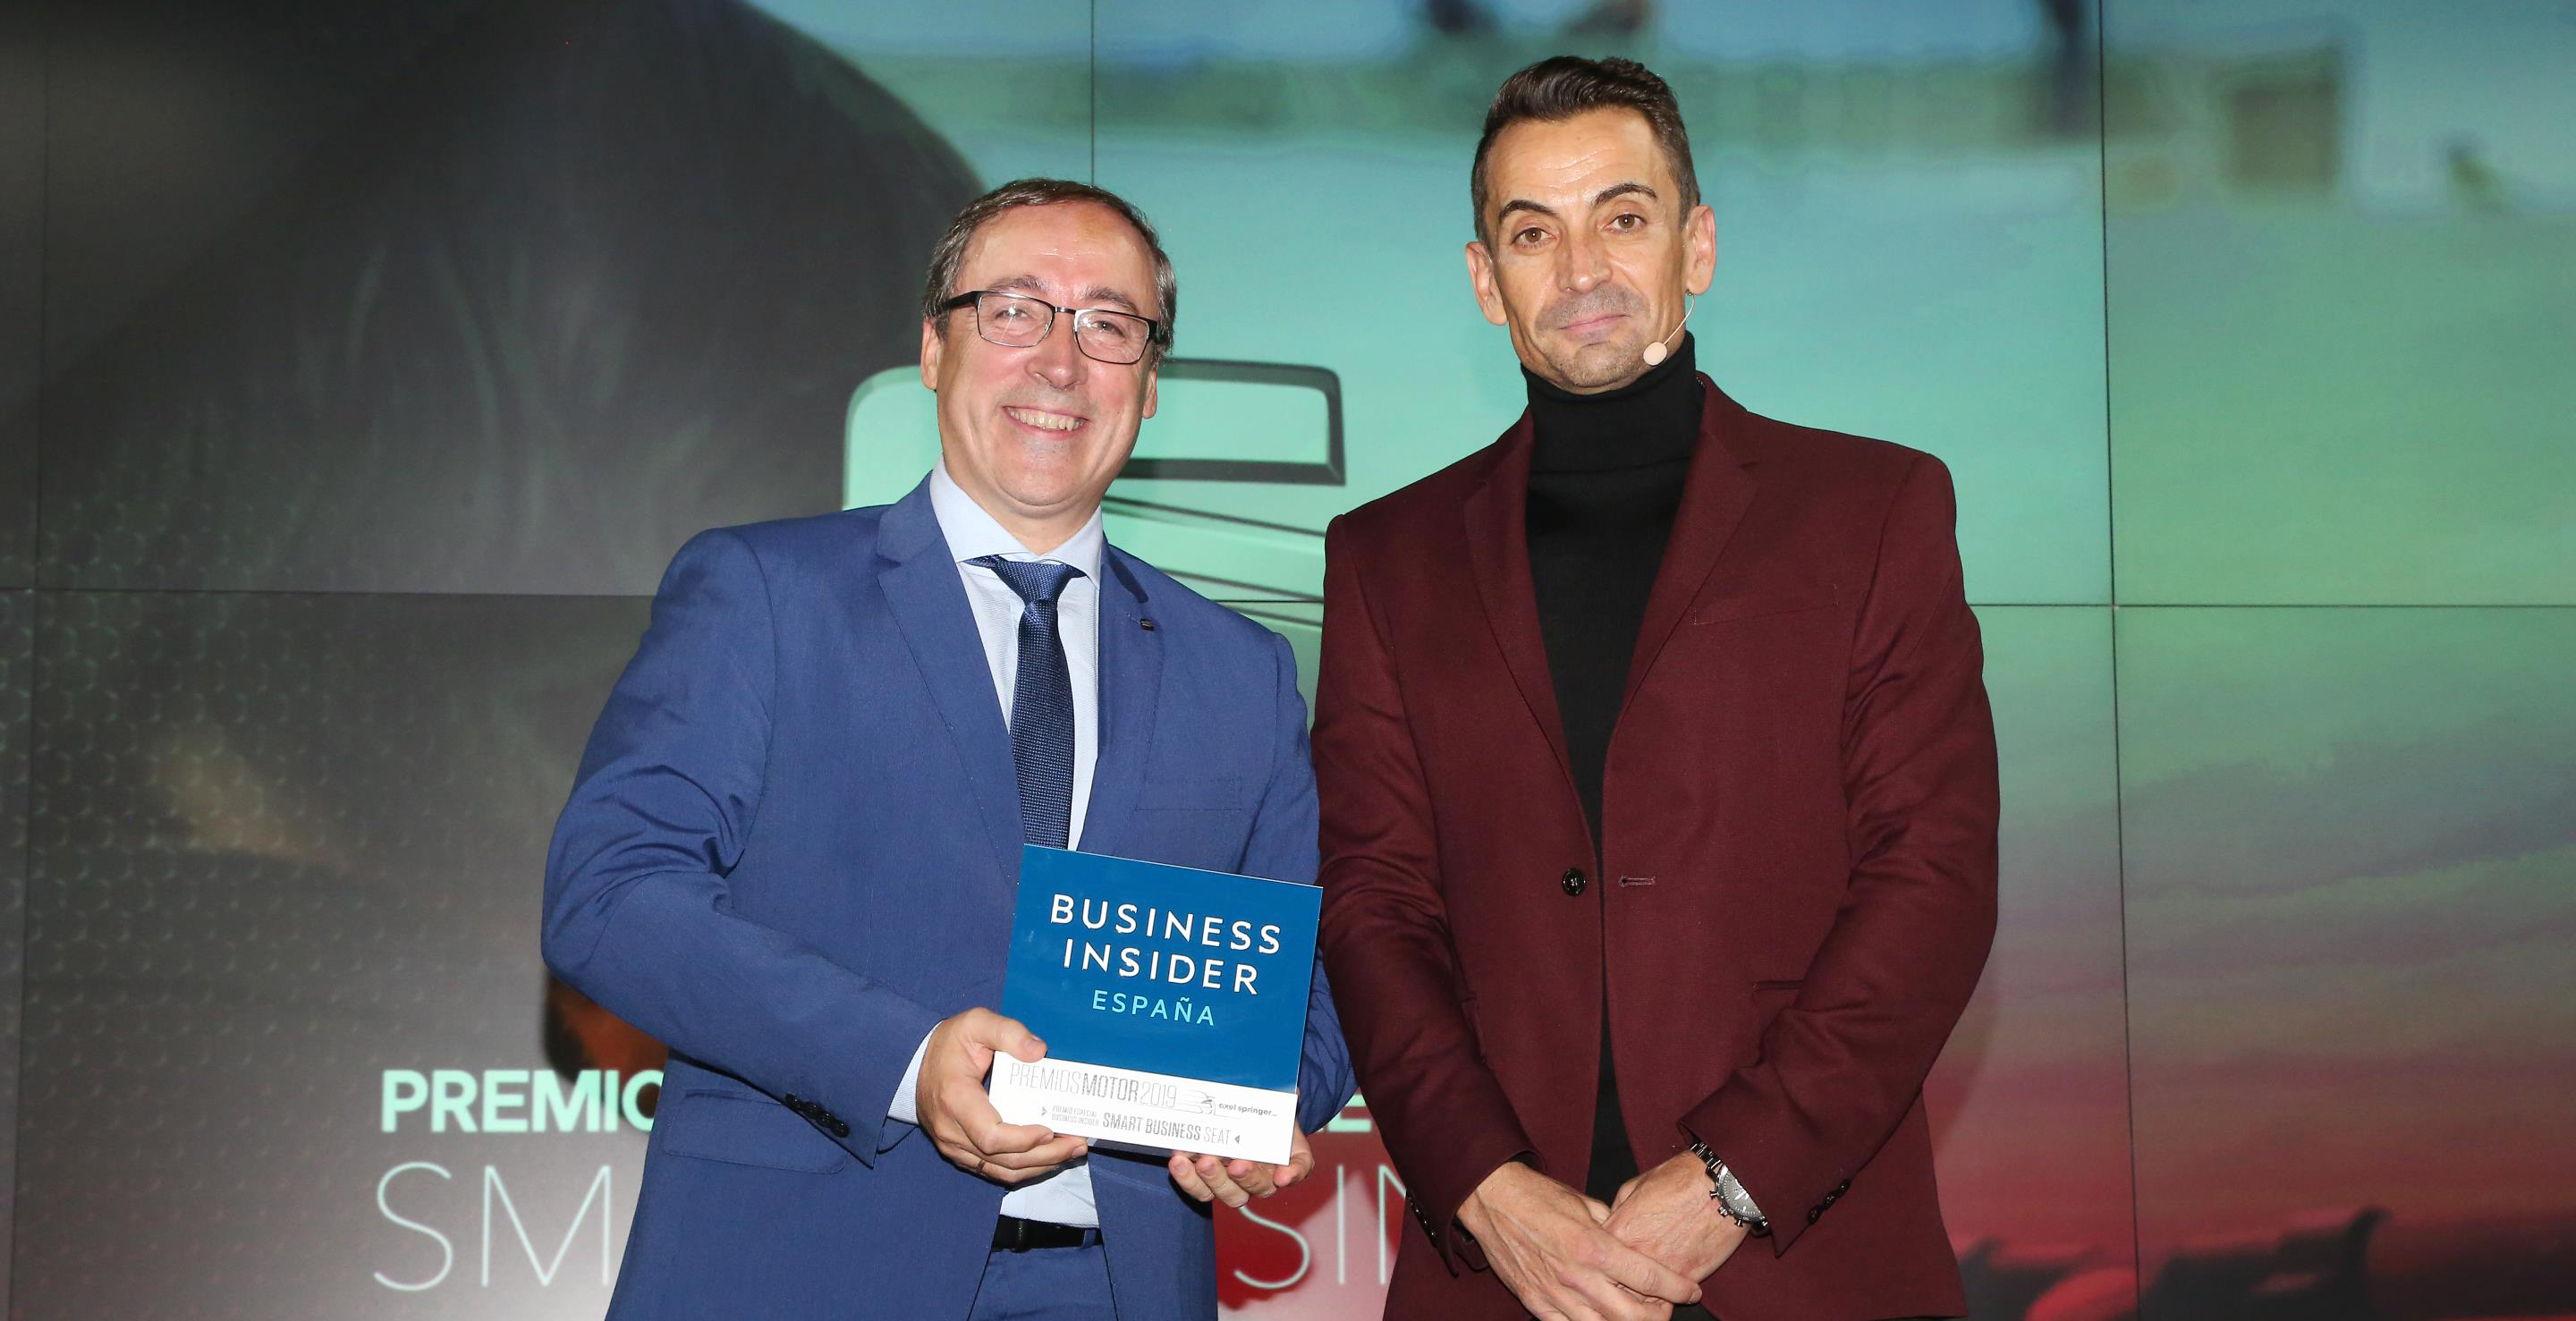 SEAT premiado con el Premio Smart Business